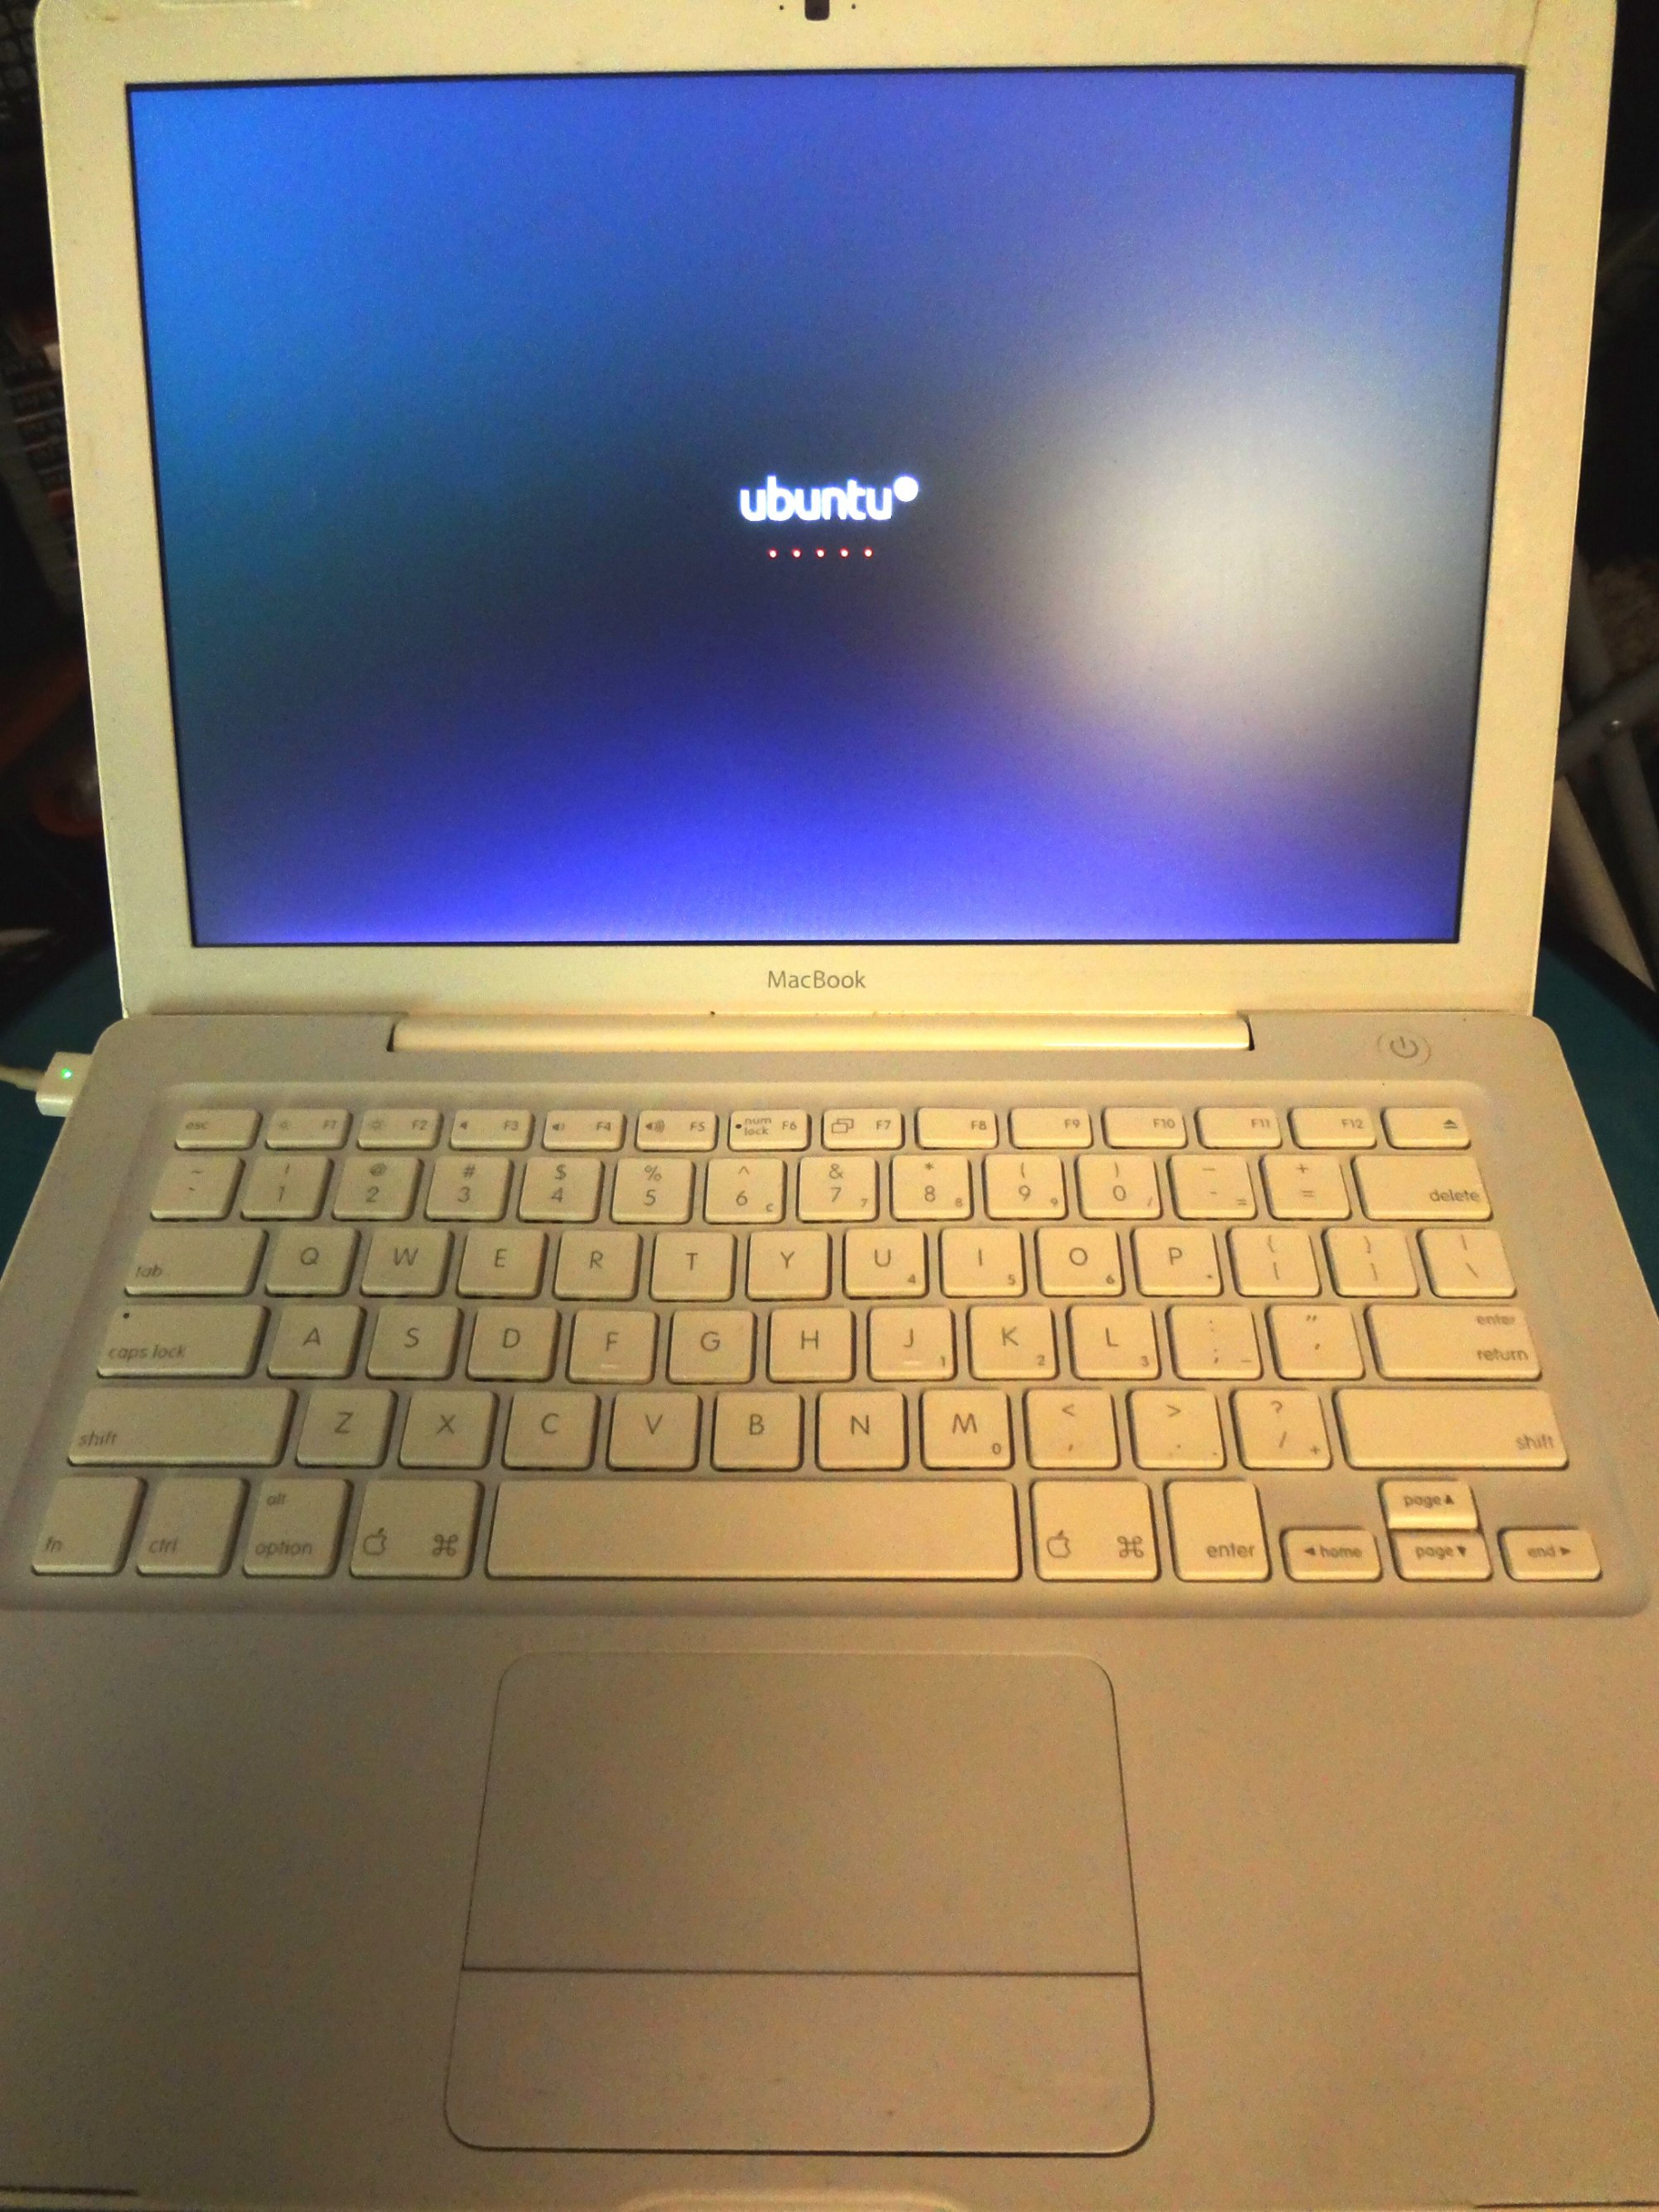 How I installed Ubuntu 16 04 1 LTS on an old MacBook 2 0 GHz Core 2